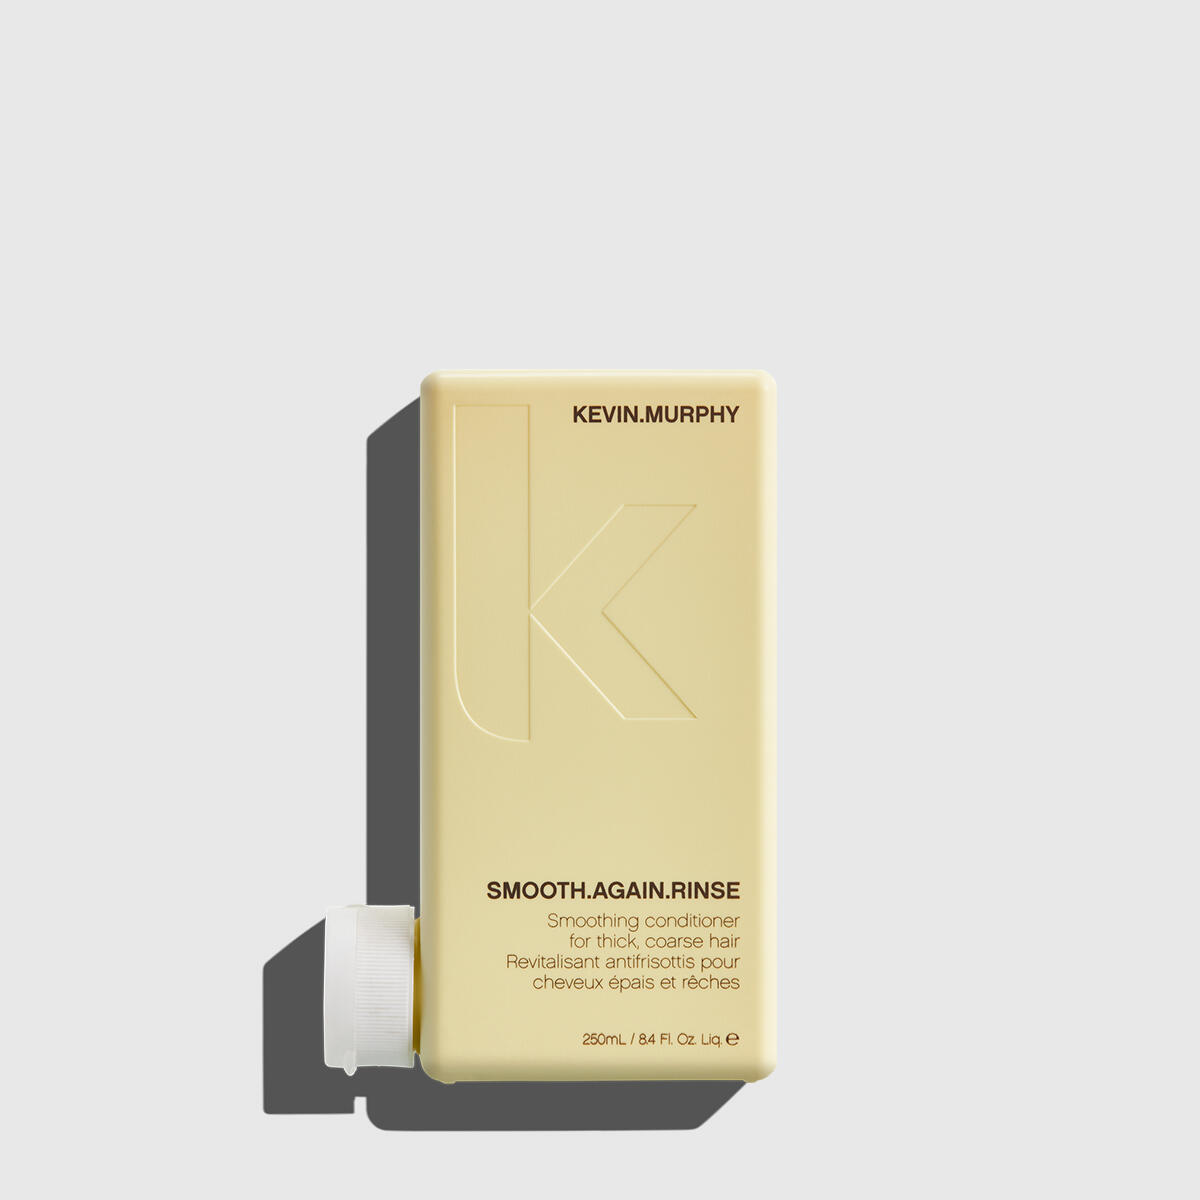 Kevin Murphy Smooth Again Rinse null